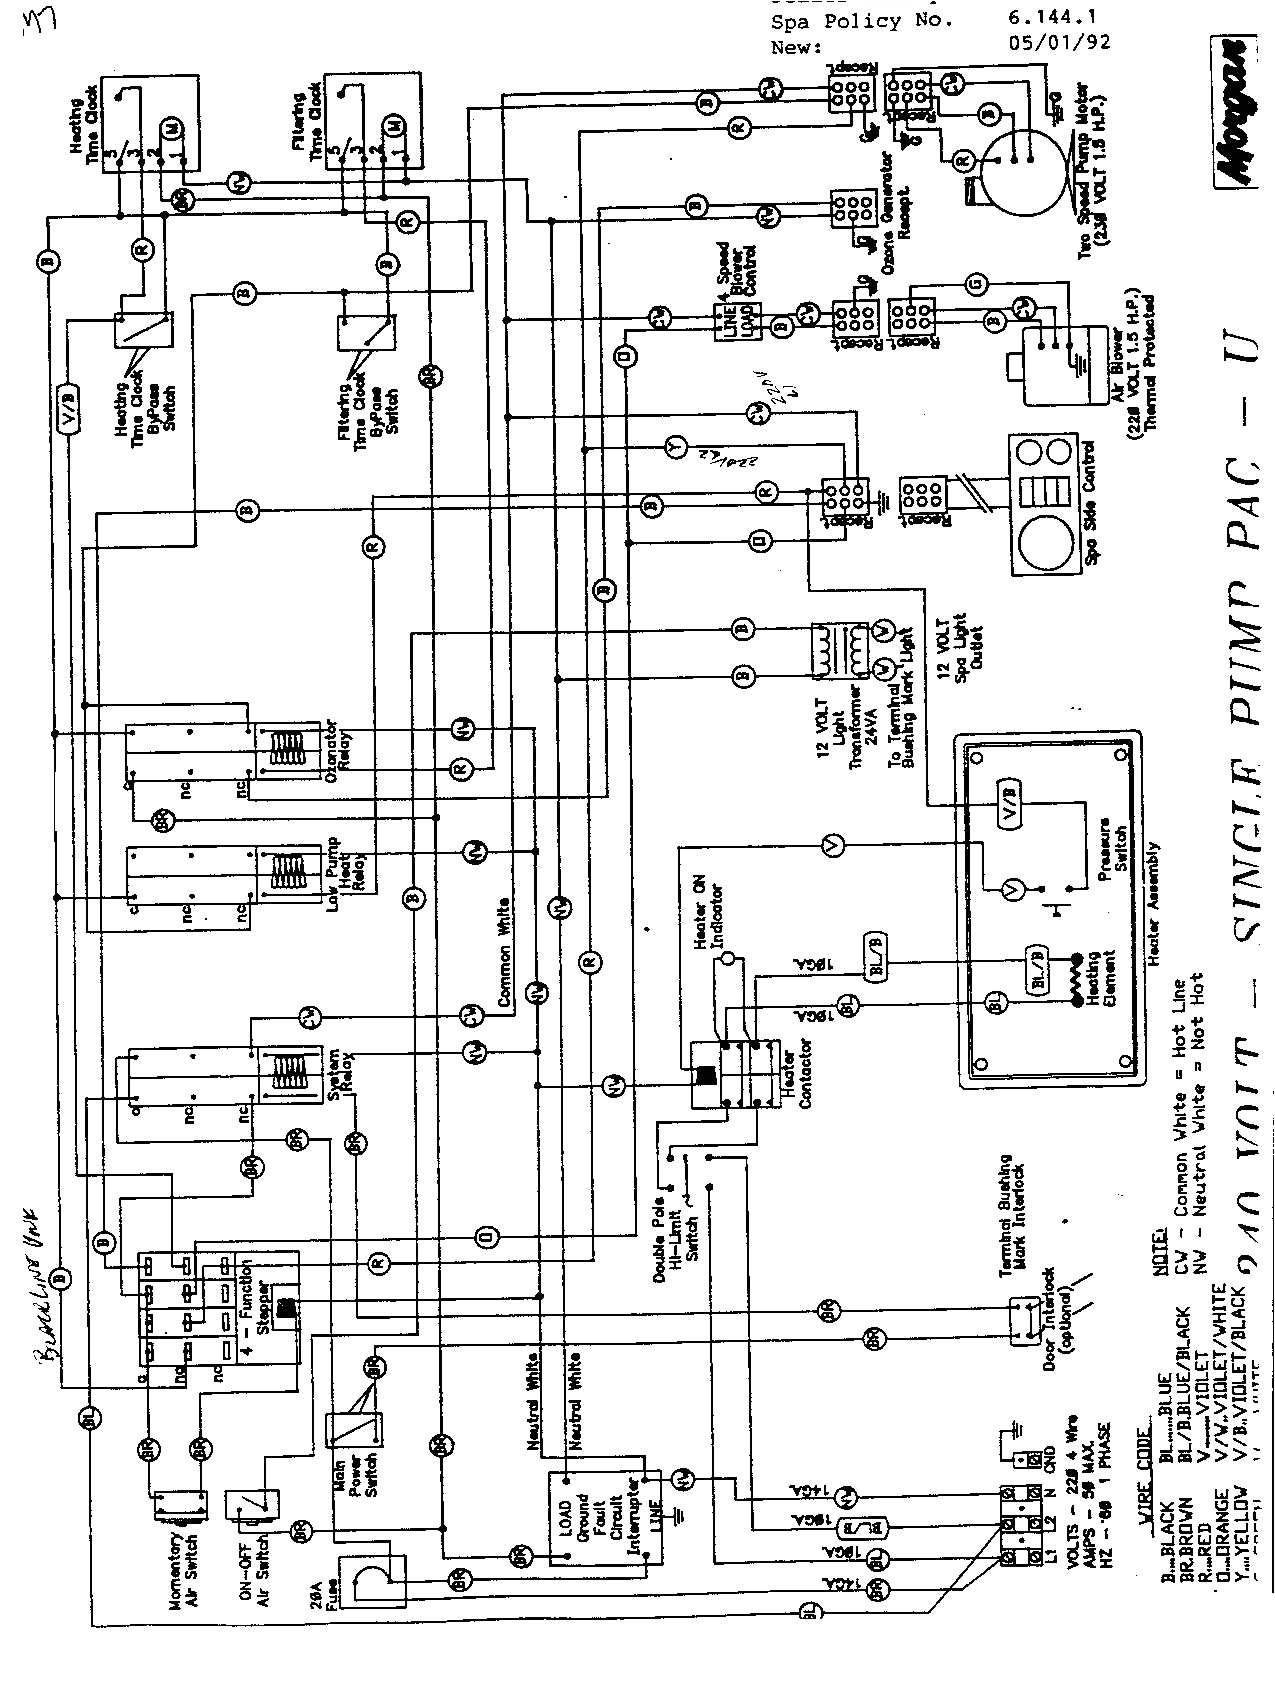 Wiring Diagram for Hot Tub 1985 Morgan Wiring Diagram Schematic Wiring Diagram Host